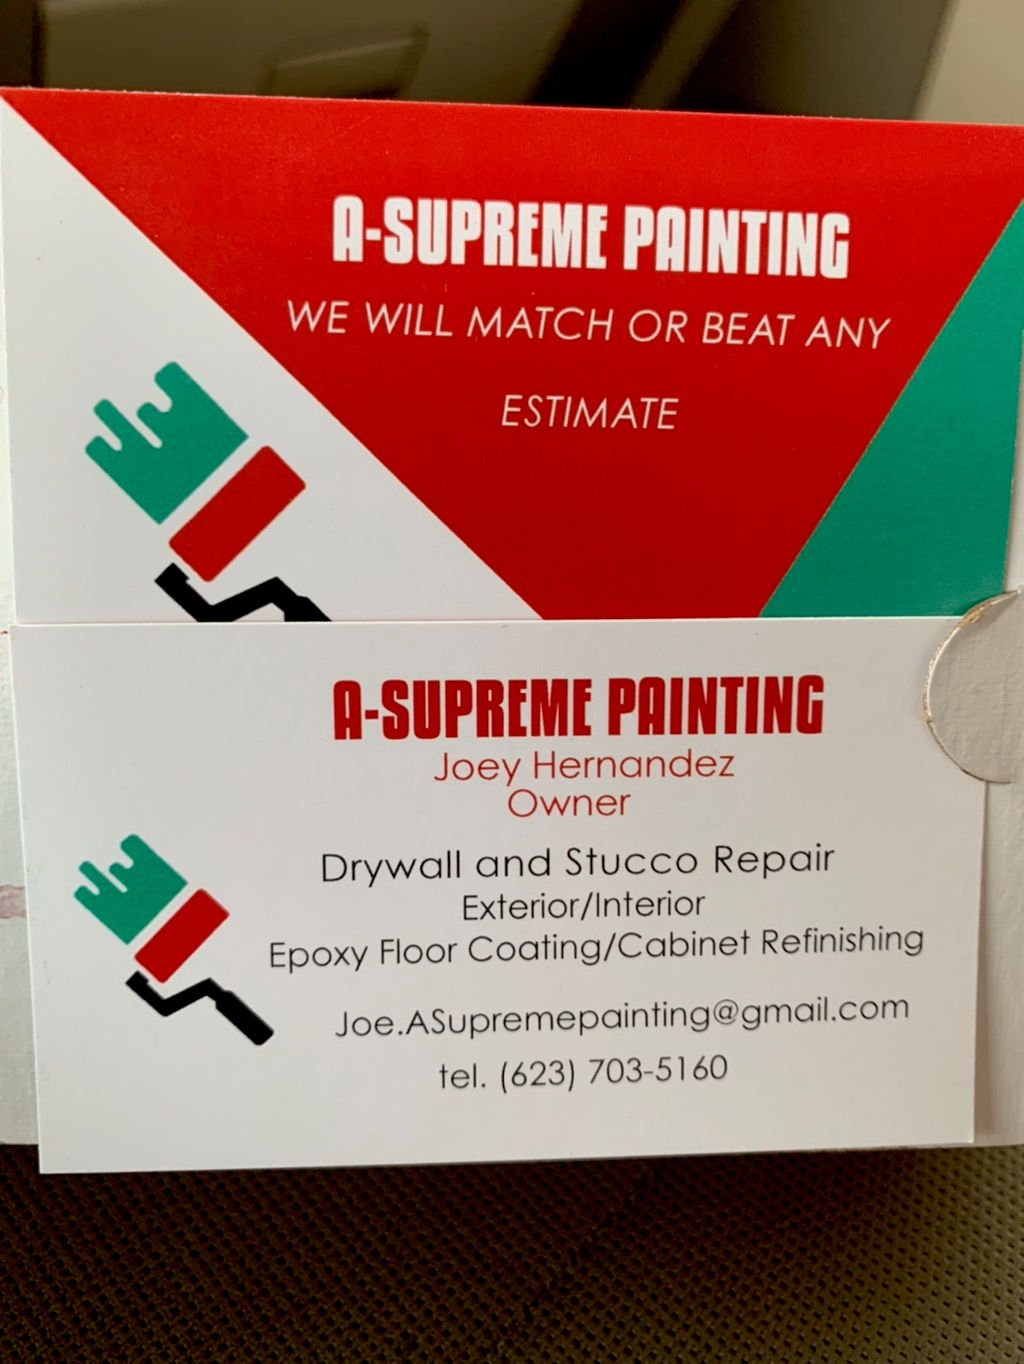 A-SUPREME PAINTING